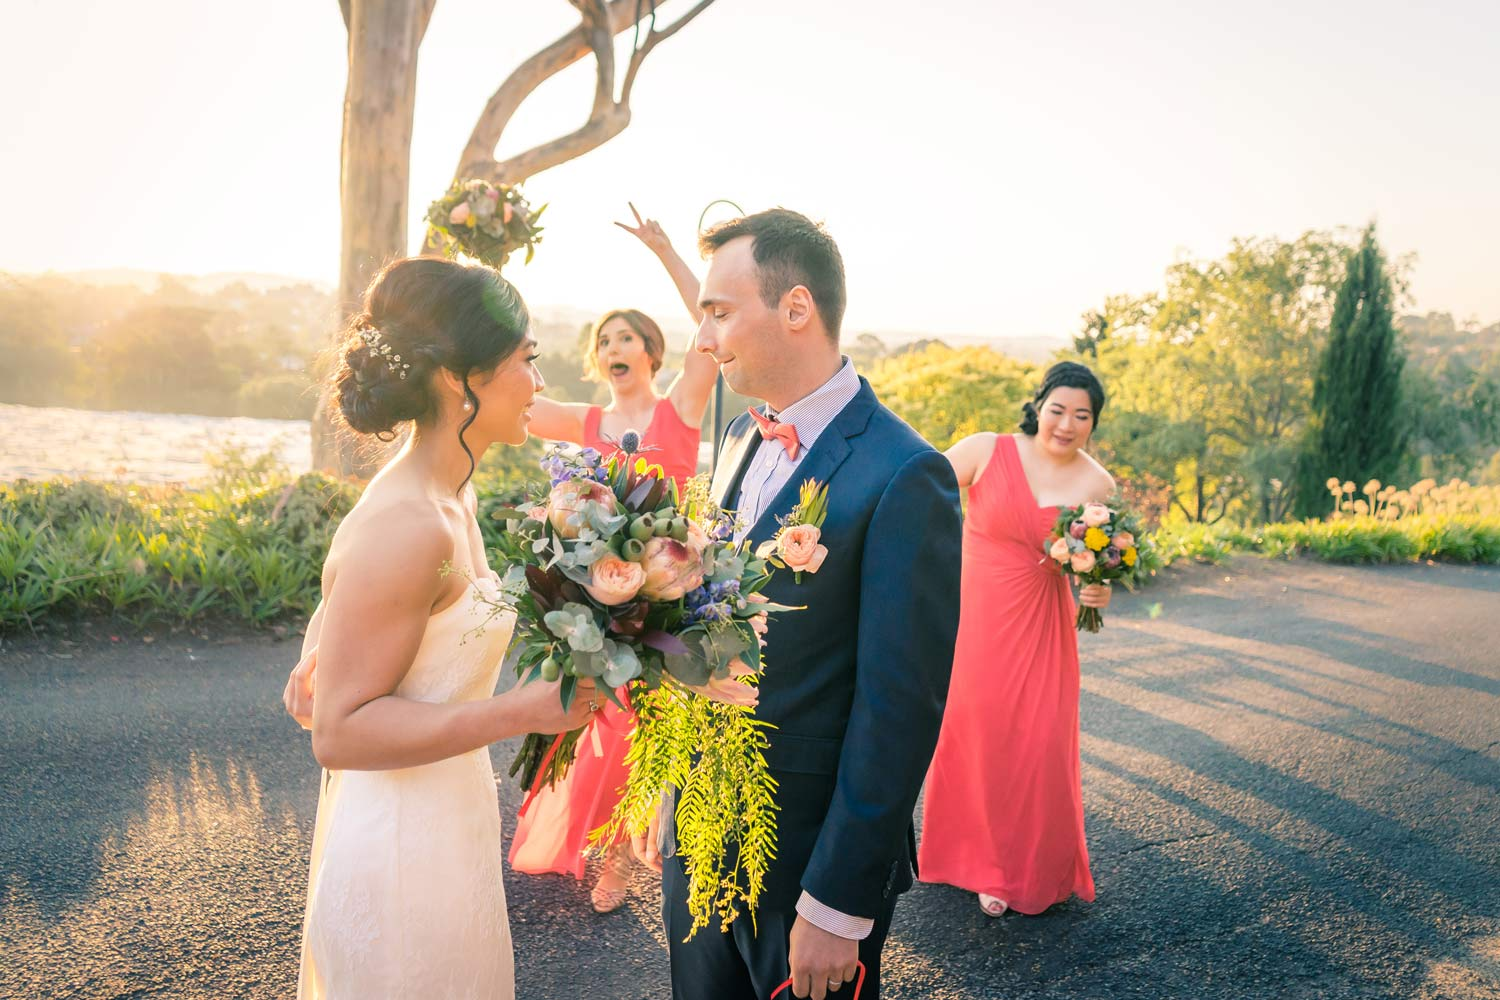 candid moment of wedding ceremony in Yarra Valley captured by Melbourne wedding photographers Black Avenue Productions